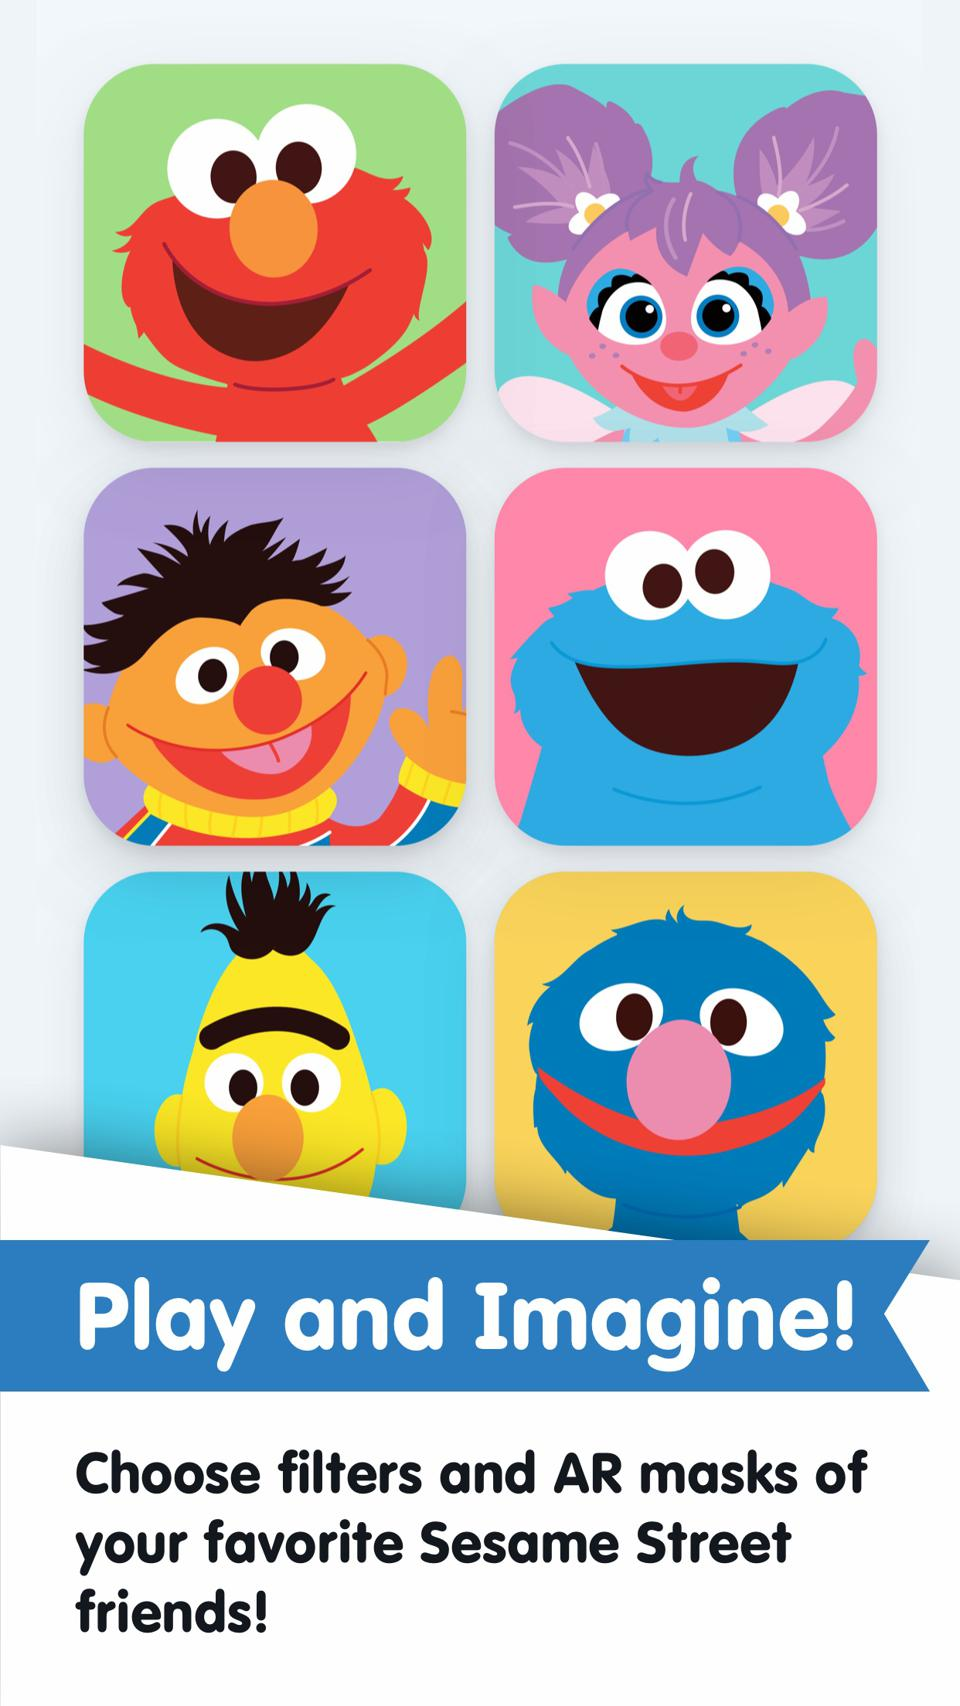 Kids can use augmented reality to play with their favorite Sesame Street characters